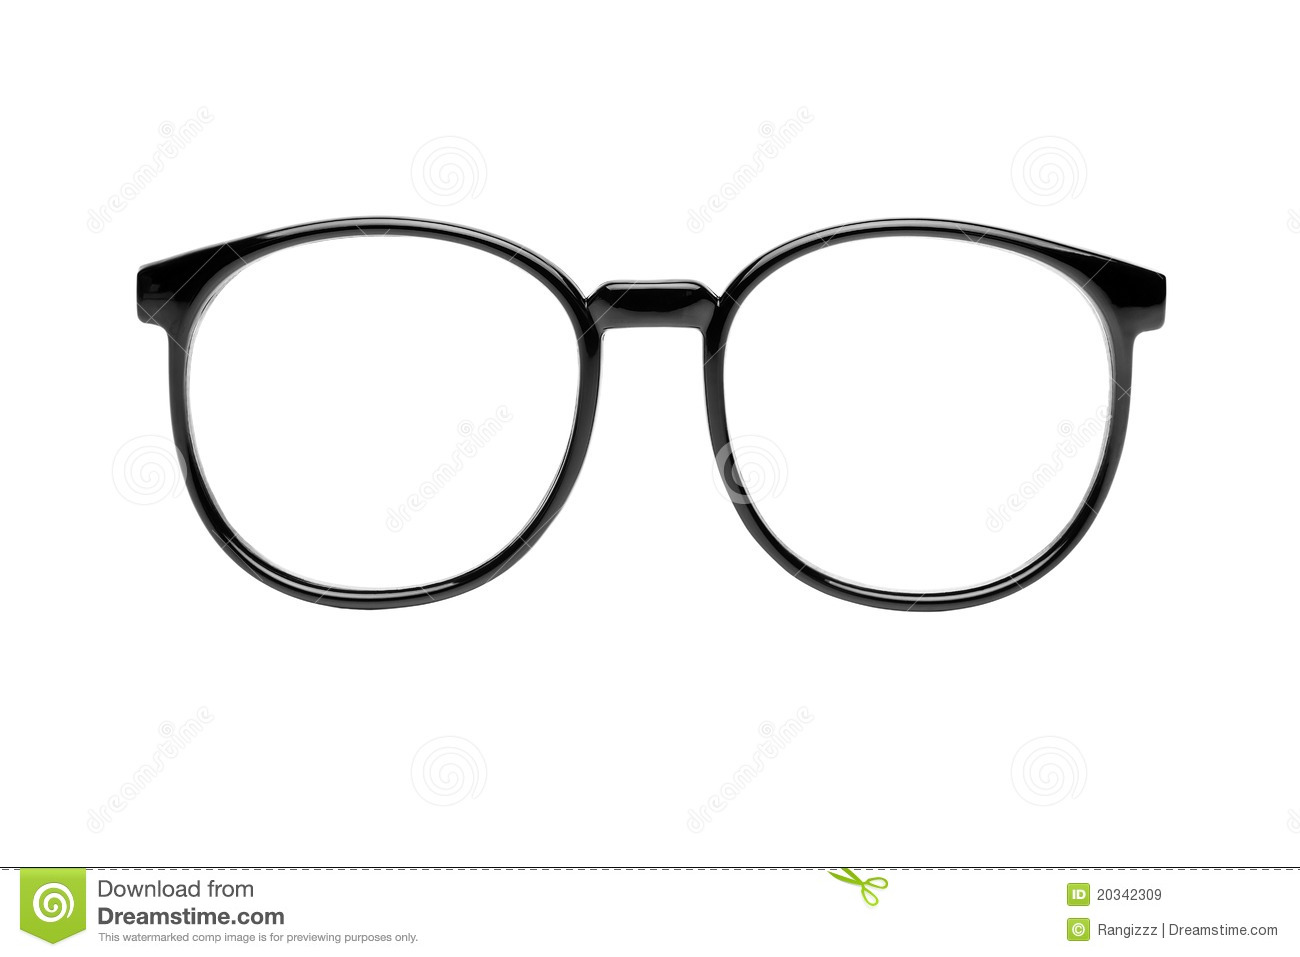 da2625fe1b7 Nerd Glasses With Clipping Path Stock Image - Image of club